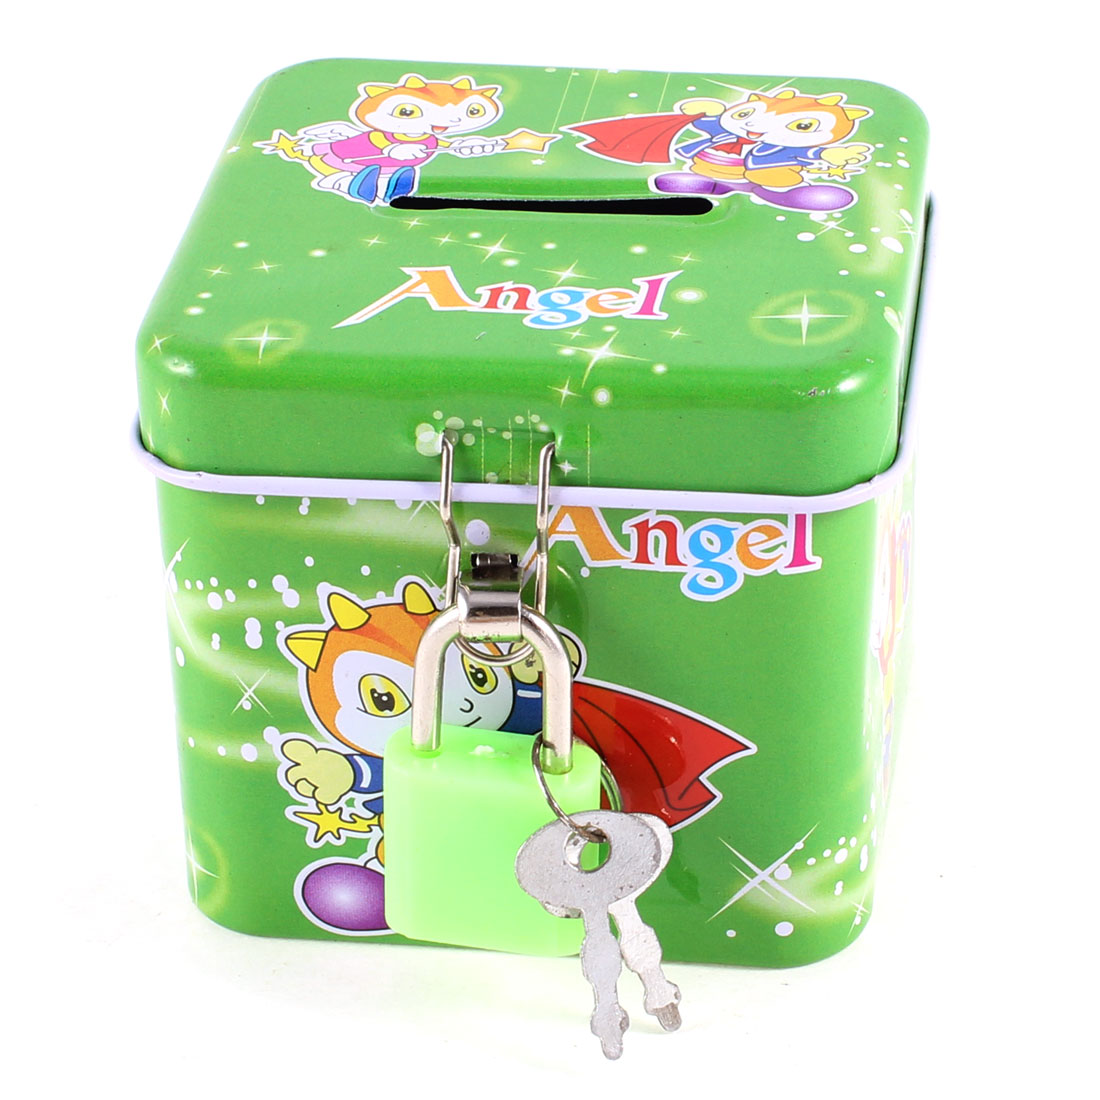 "2.8"" High Square Shaped Coins Pennies Piggy Bank Box Green w 2 Keys"